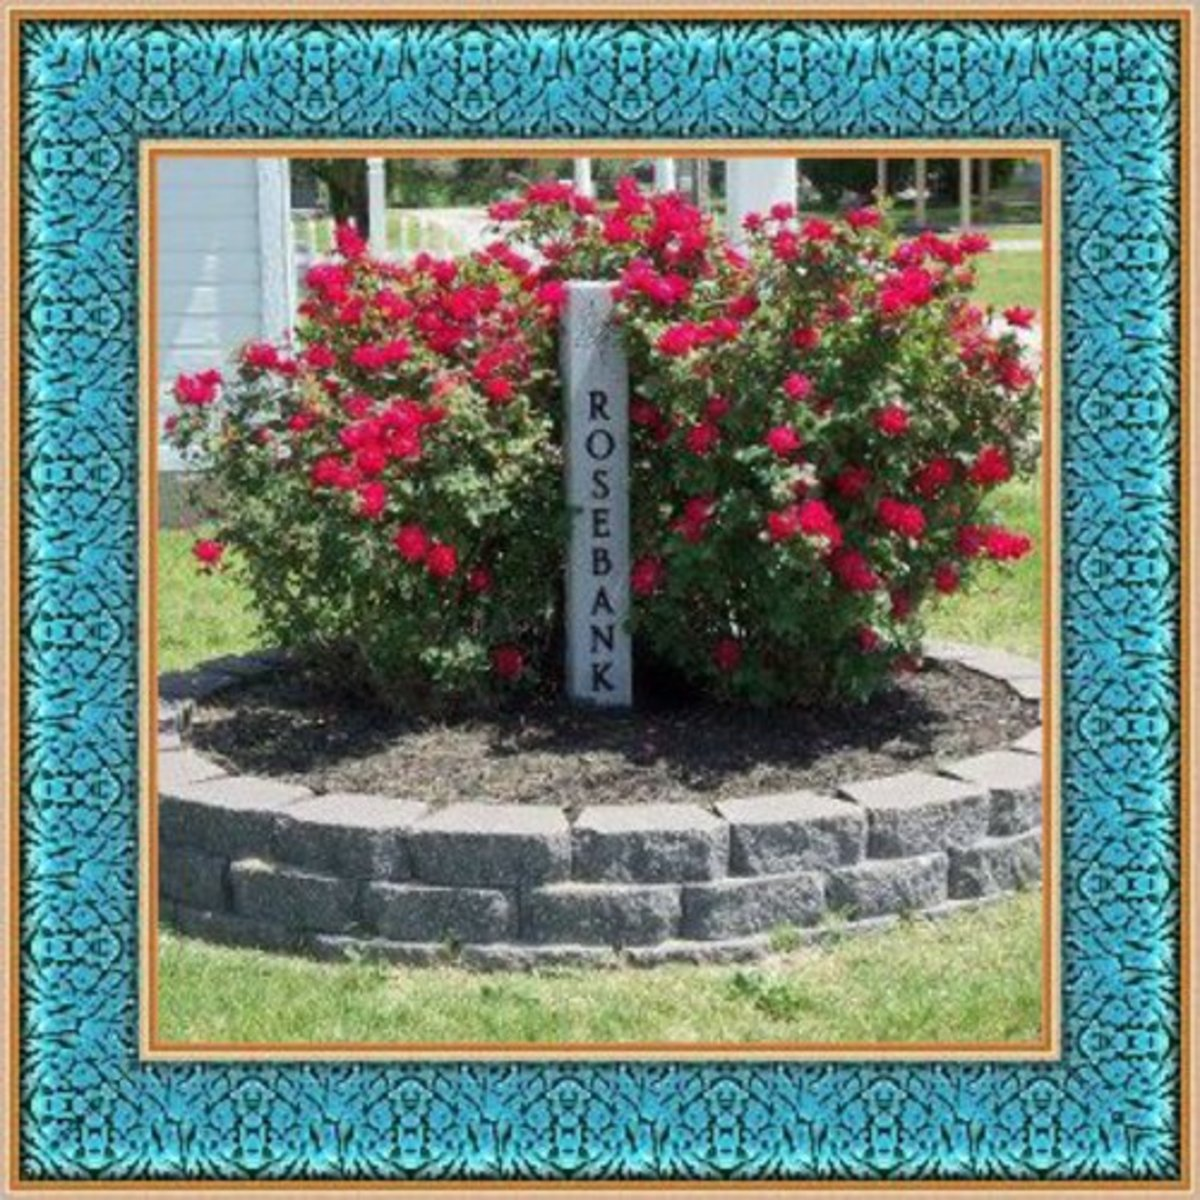 Genealogical Records for Rose Bank and Other Cemeteries